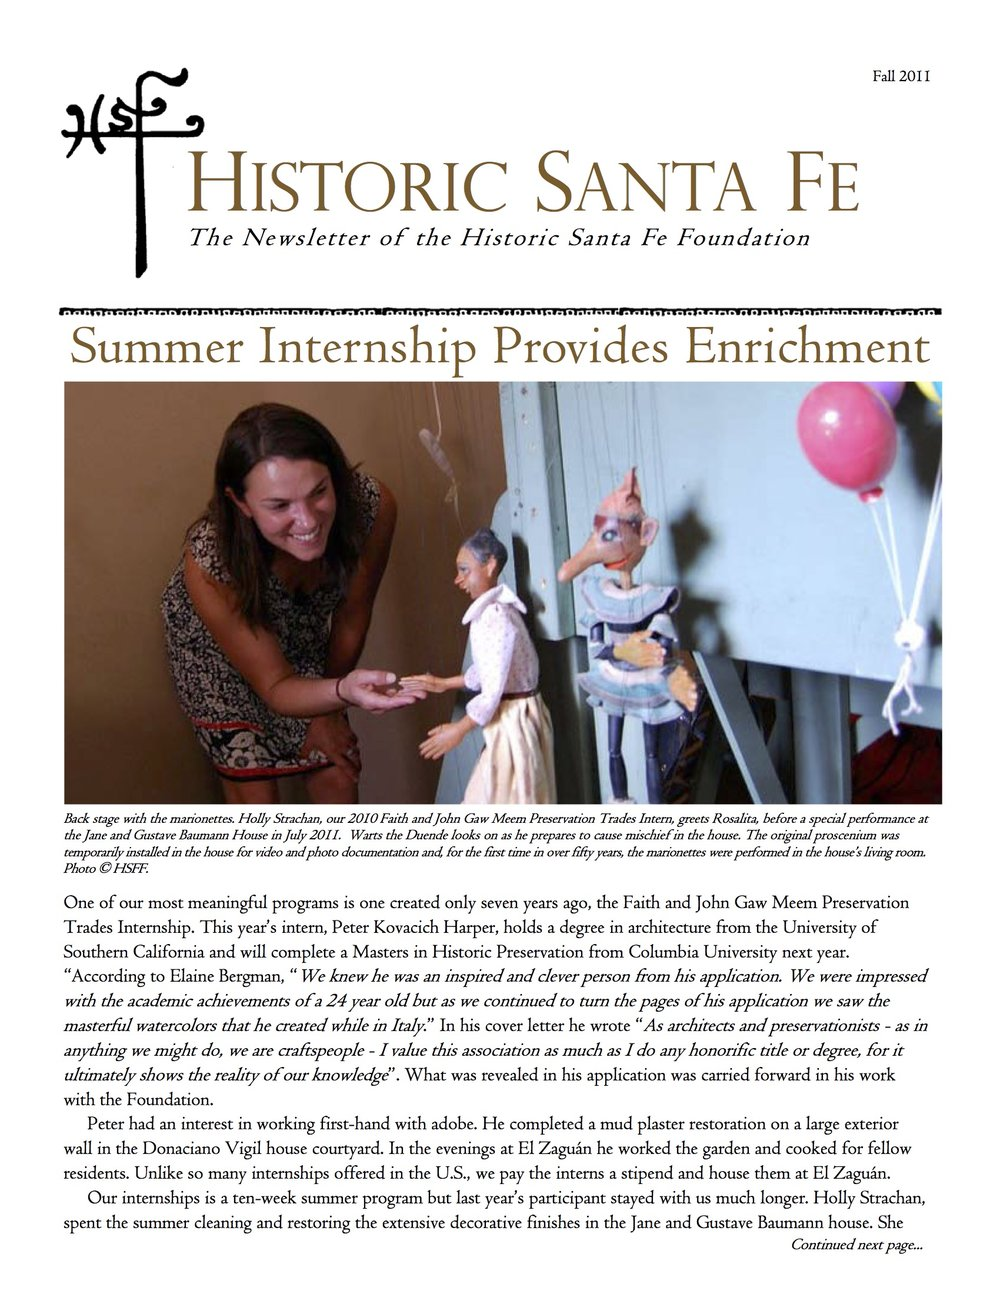 HSFFPrintedNewsletterFall2011Cover.jpg